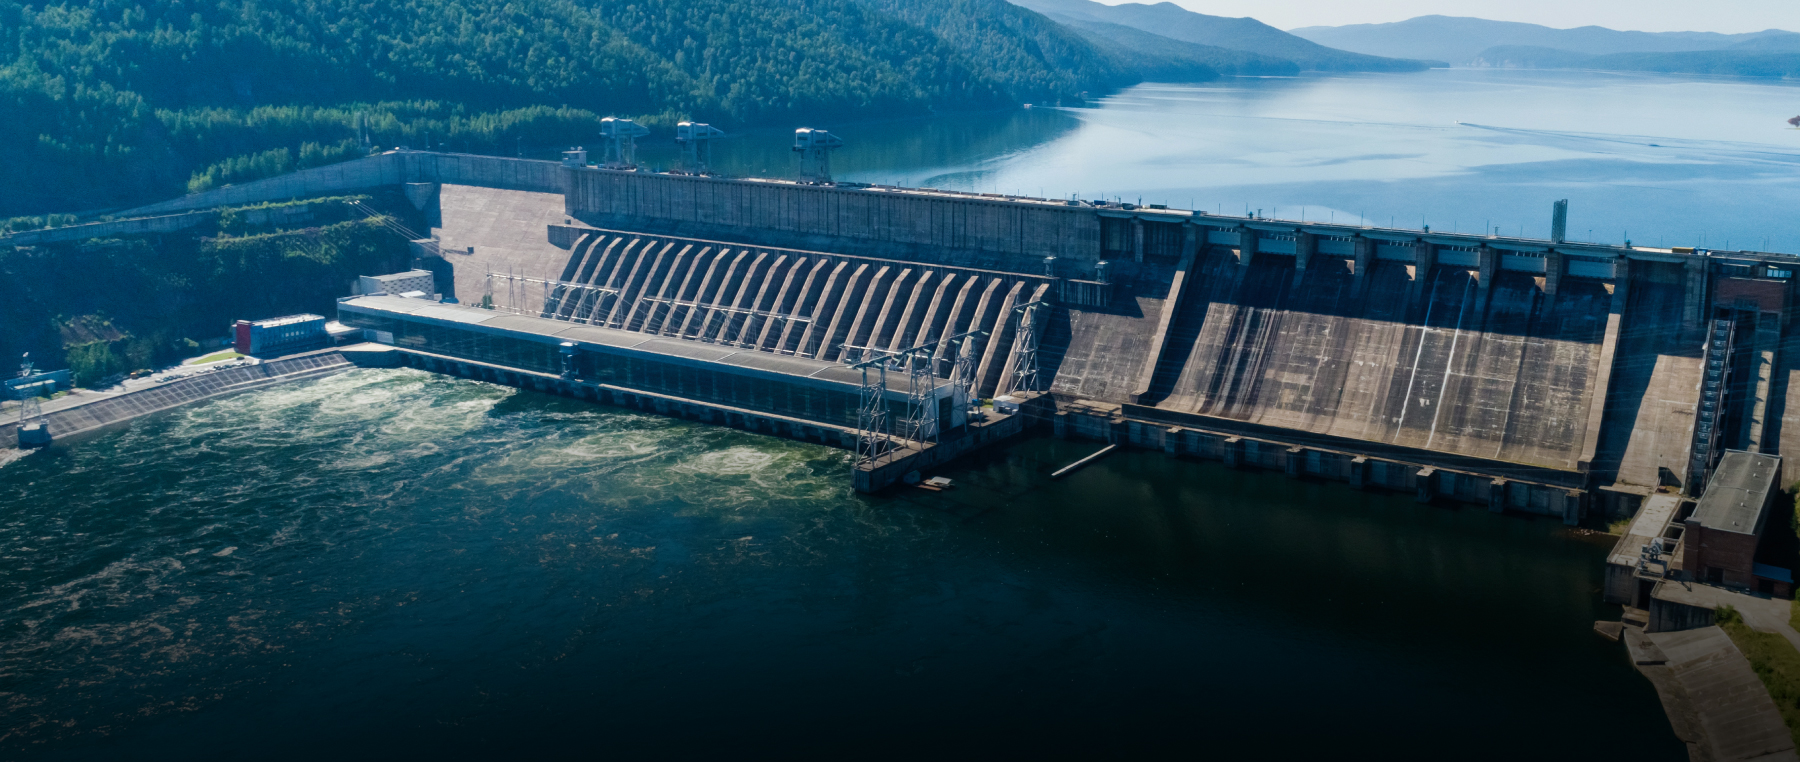 The future of hydro power generation